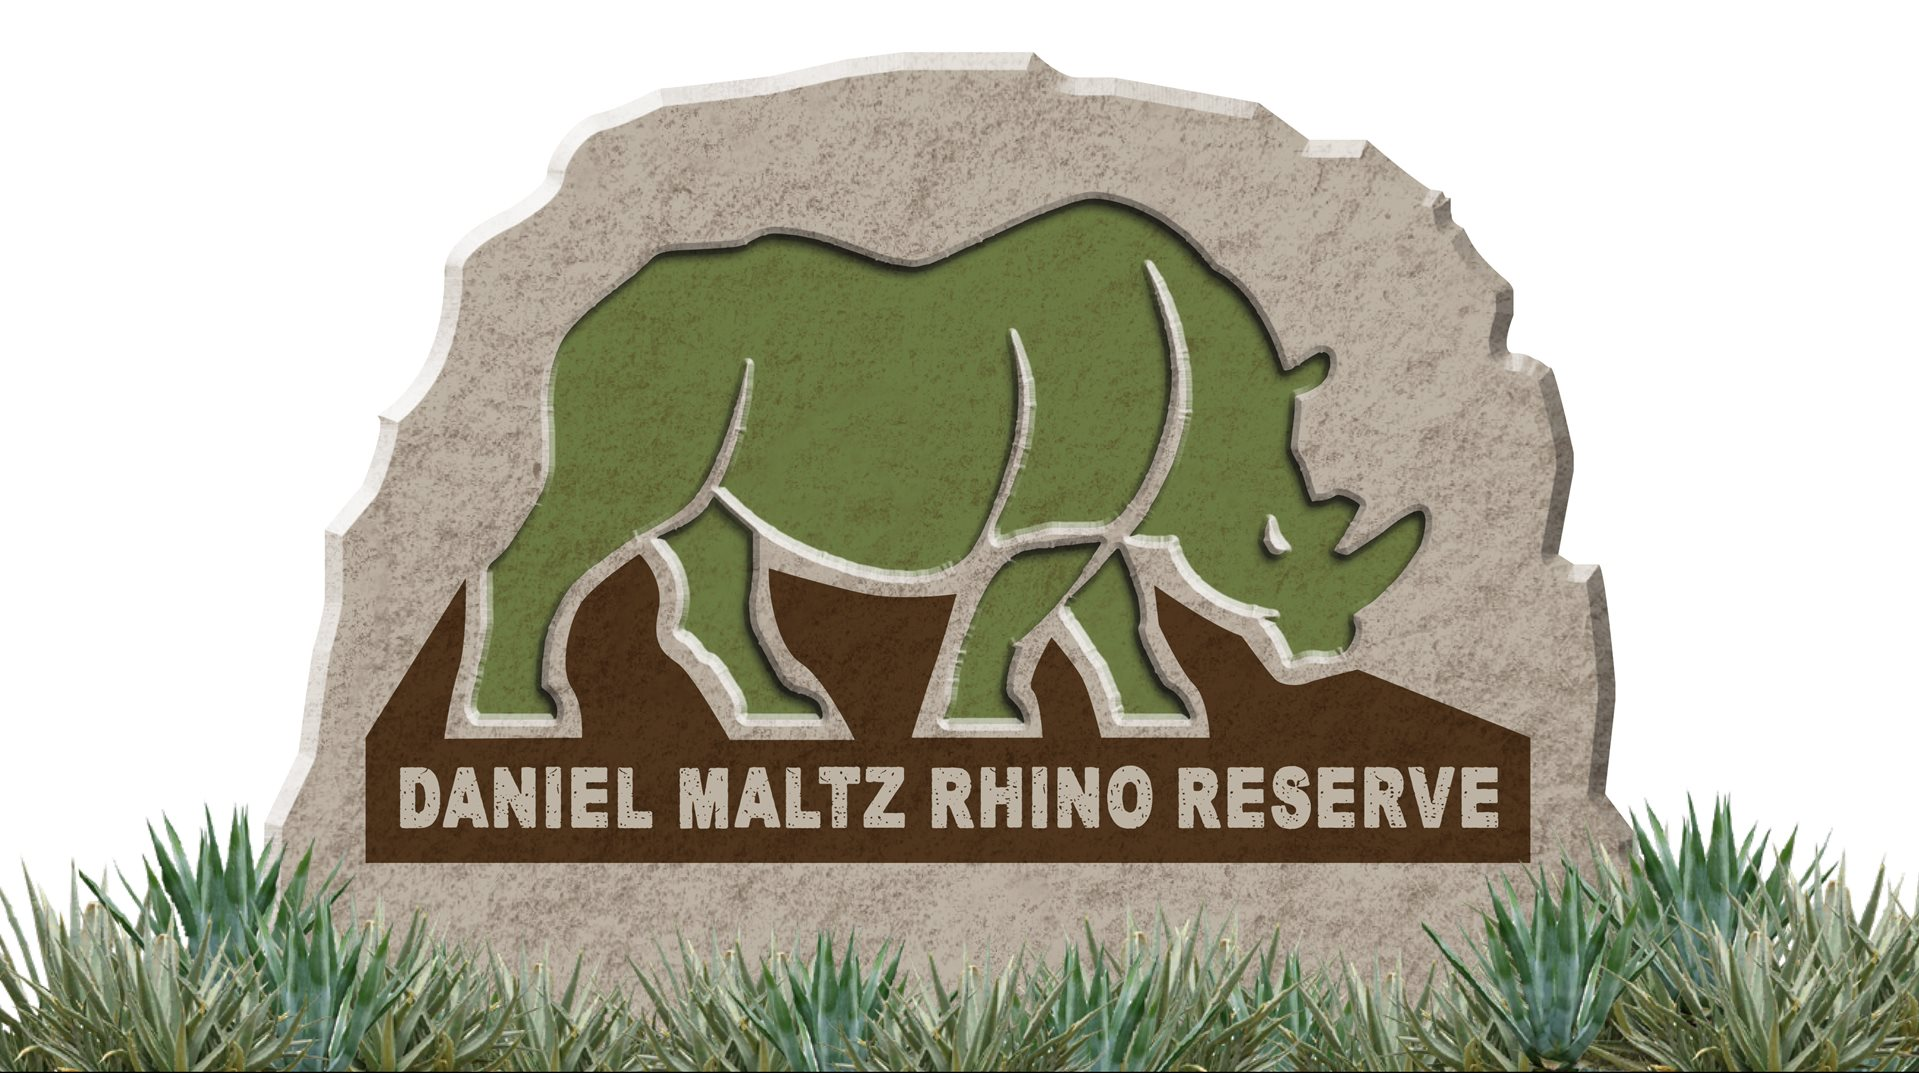 Cleveland Metroparks Zoo Announces the Daniel Maltz Rhino Reserve